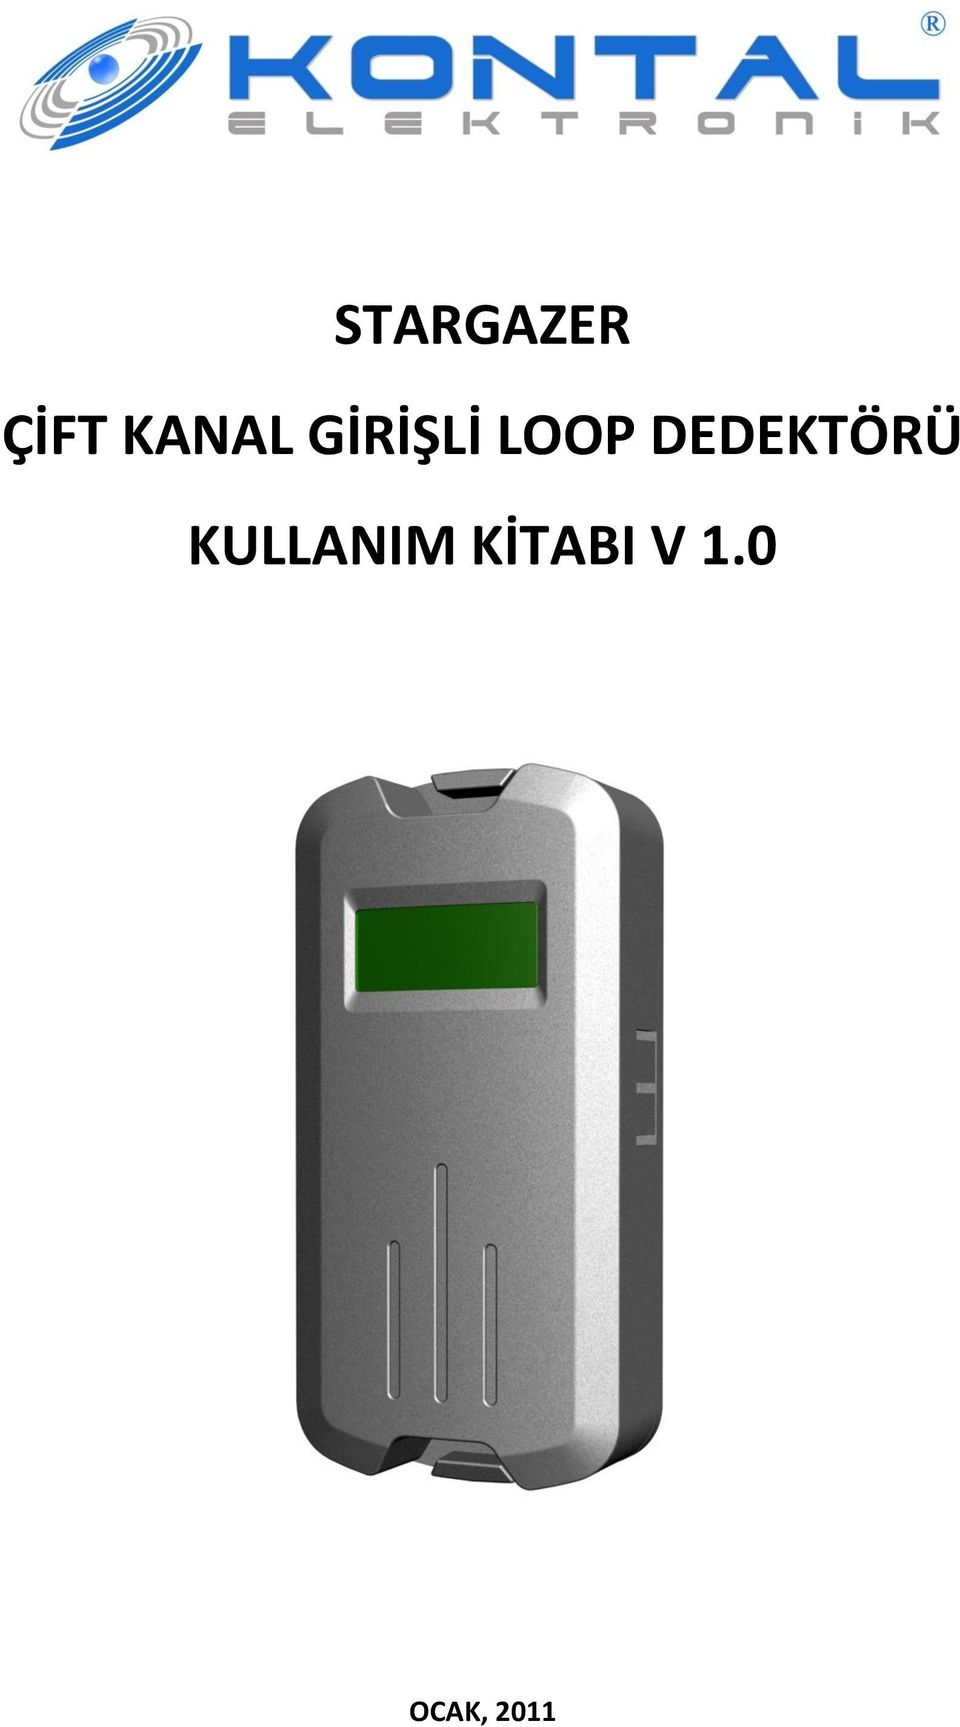 0 OCAK, 2011 KONTAL ELEKTRONİK ::